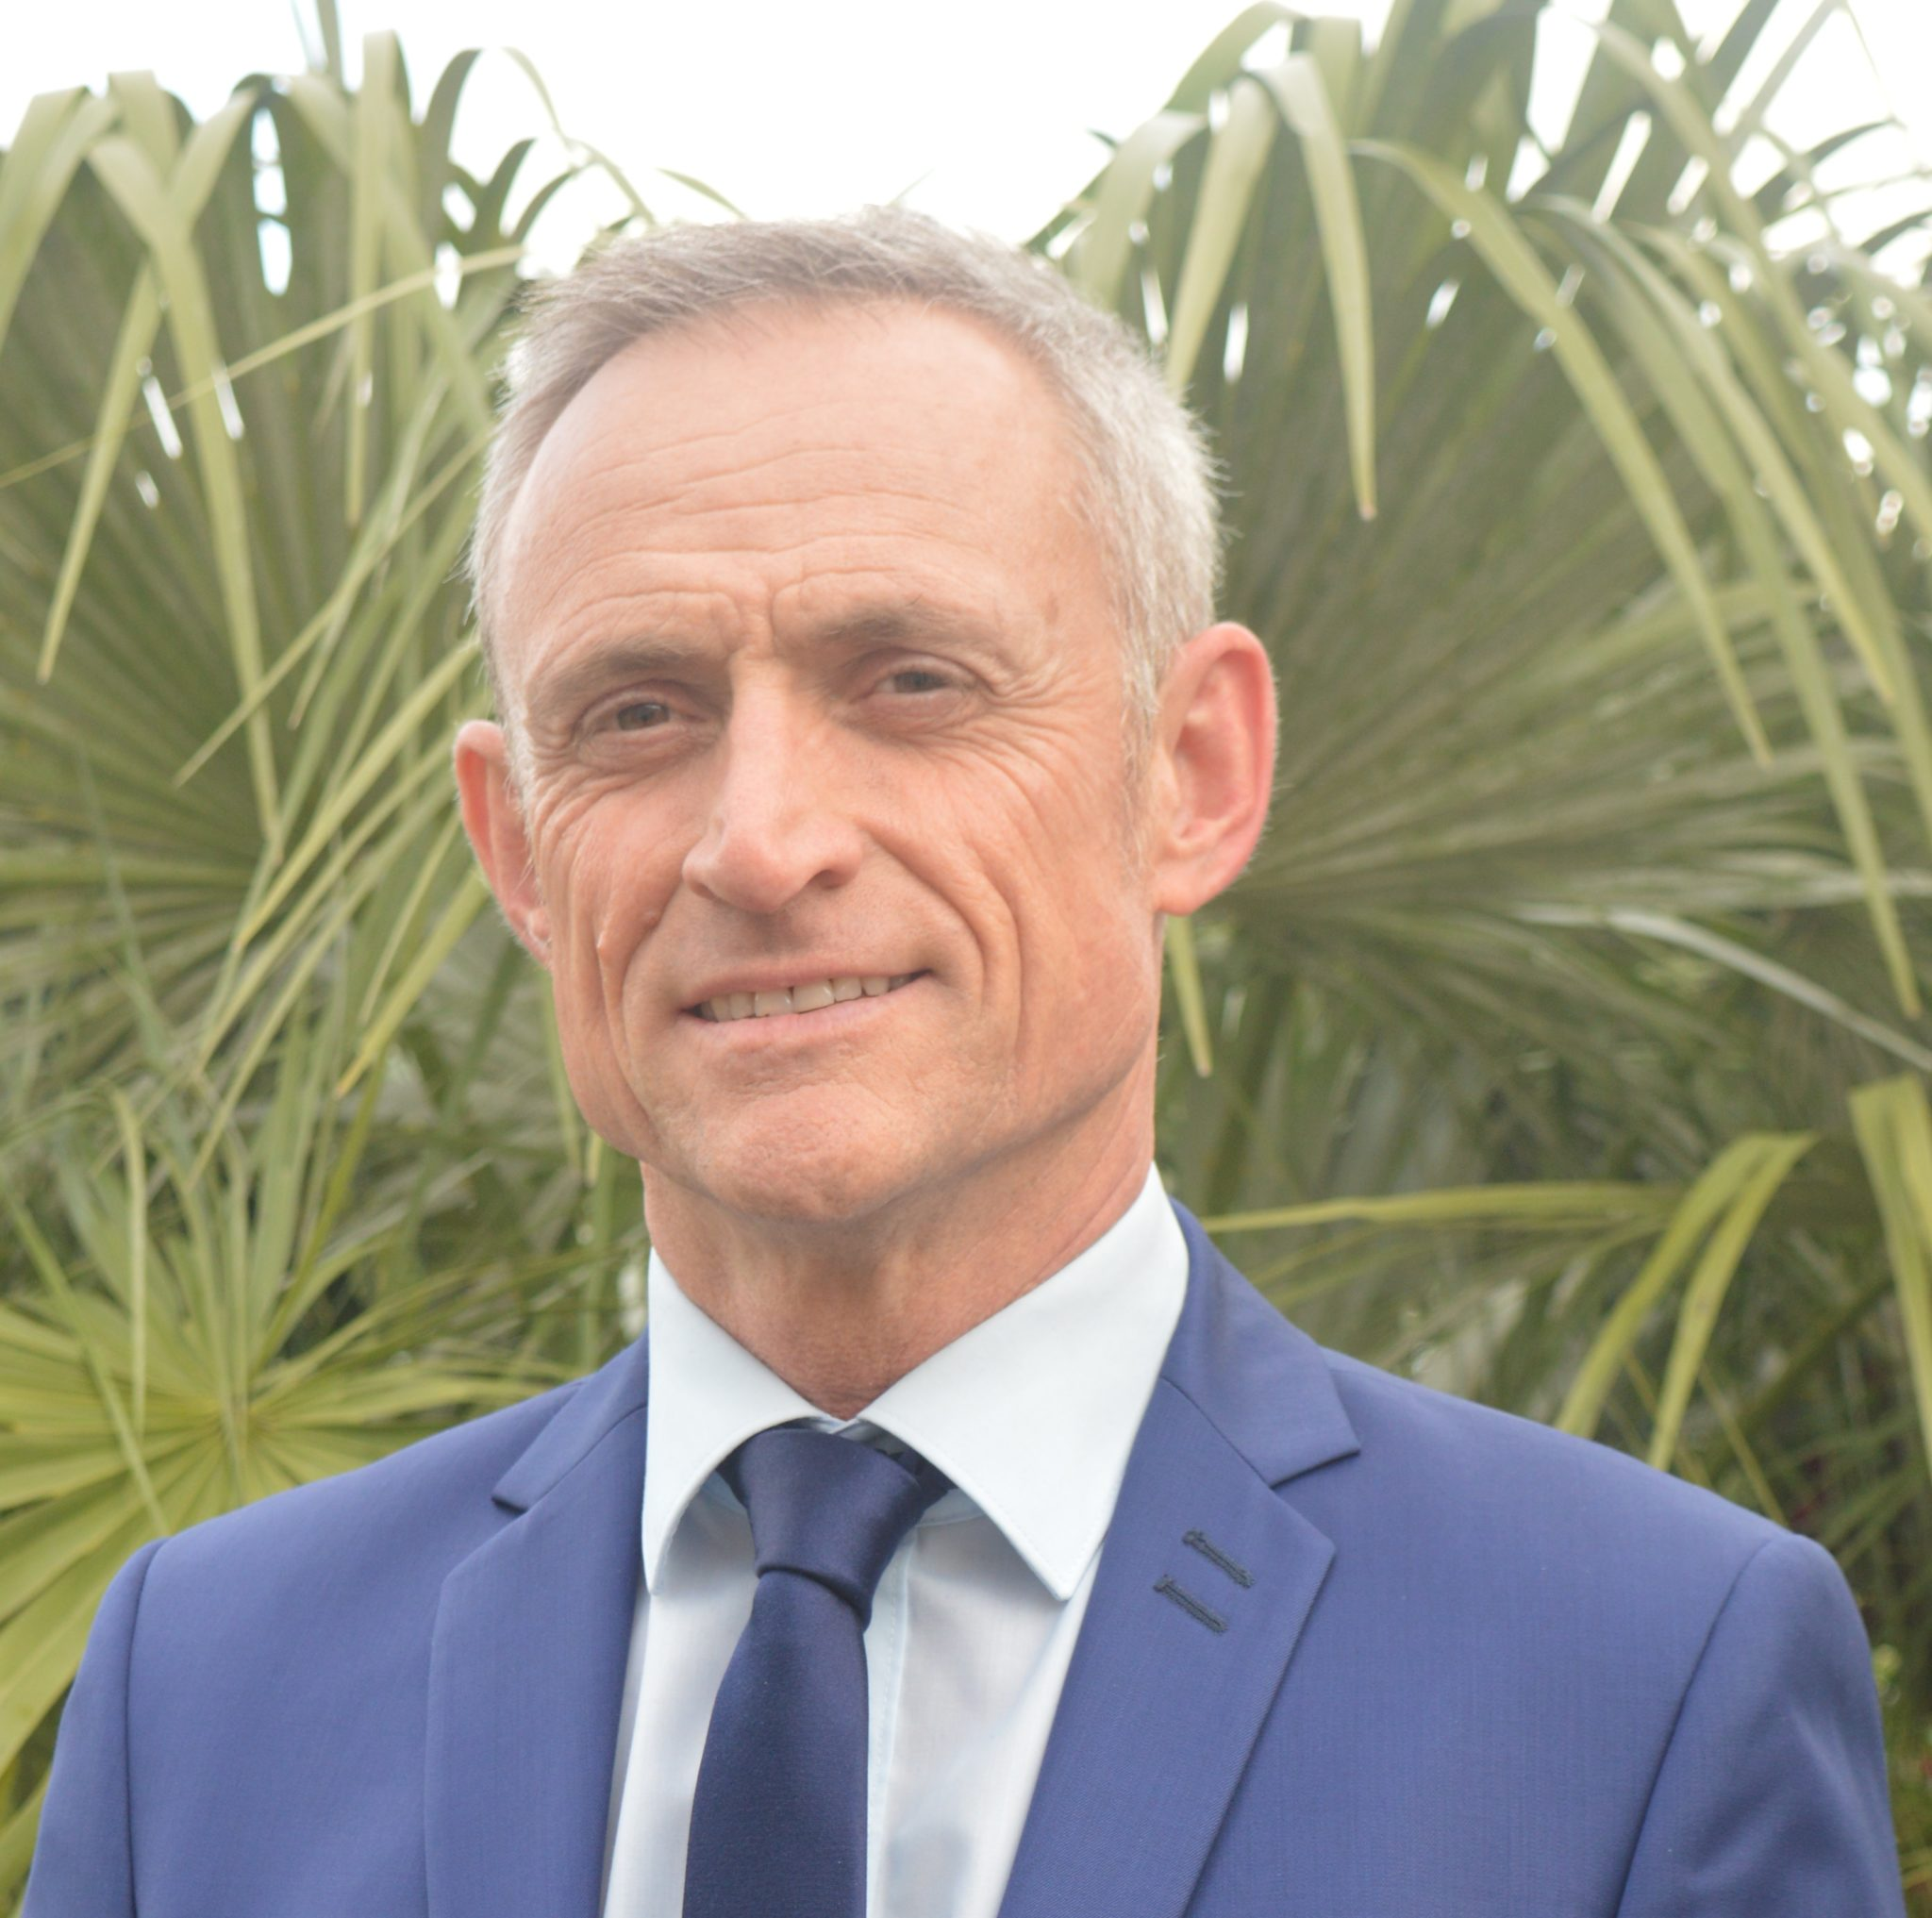 Interview of Arnaud le Berrigaud – Head of Products of Agri-Food Industries at Knauf Industries